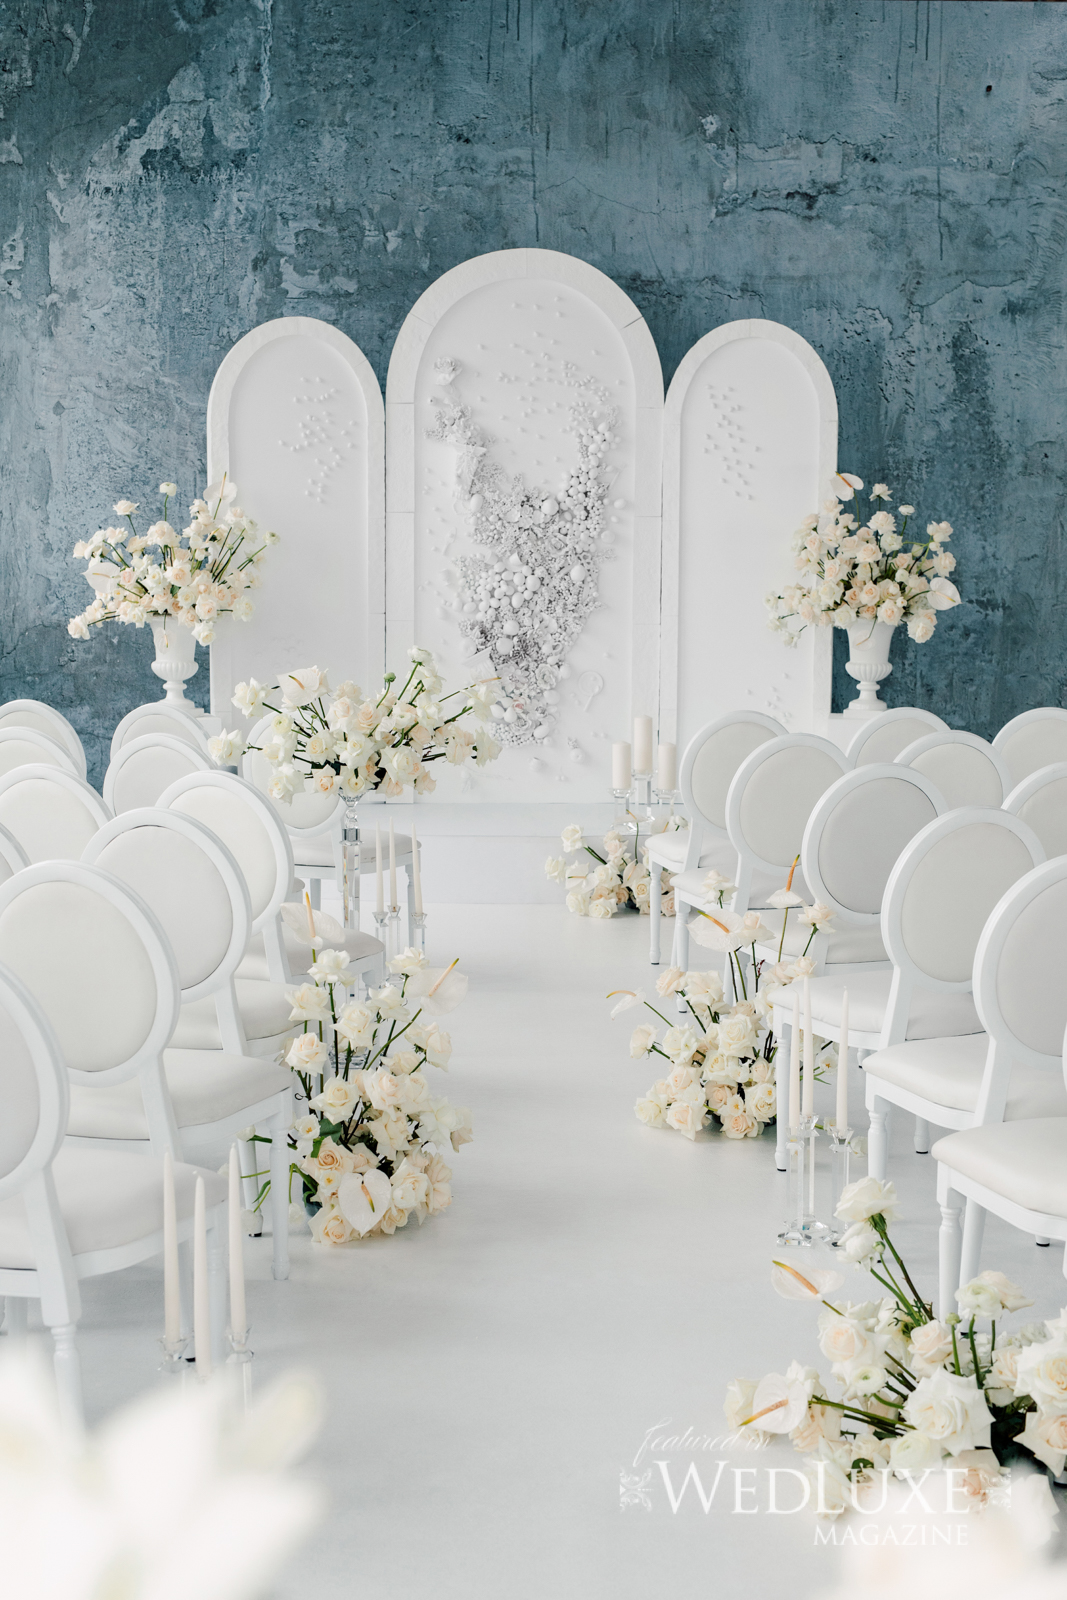 Event Carpet in Chalk for Wedluxe Photo Shoot